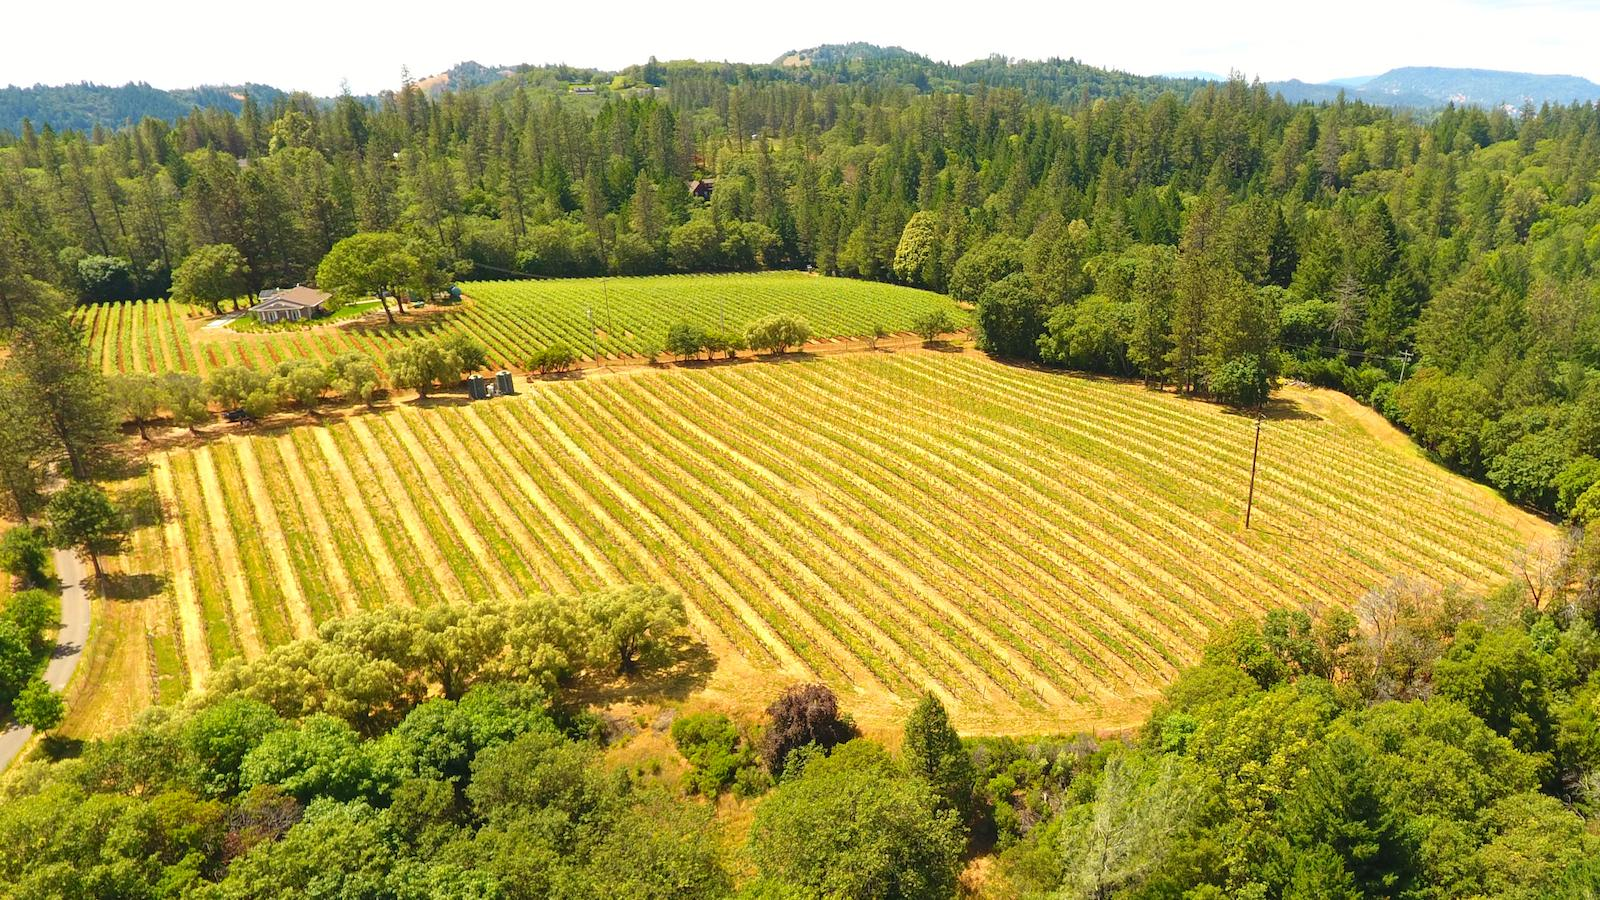 The Dunn family has been farming their mountain-top vineyard for nearly 40 years.